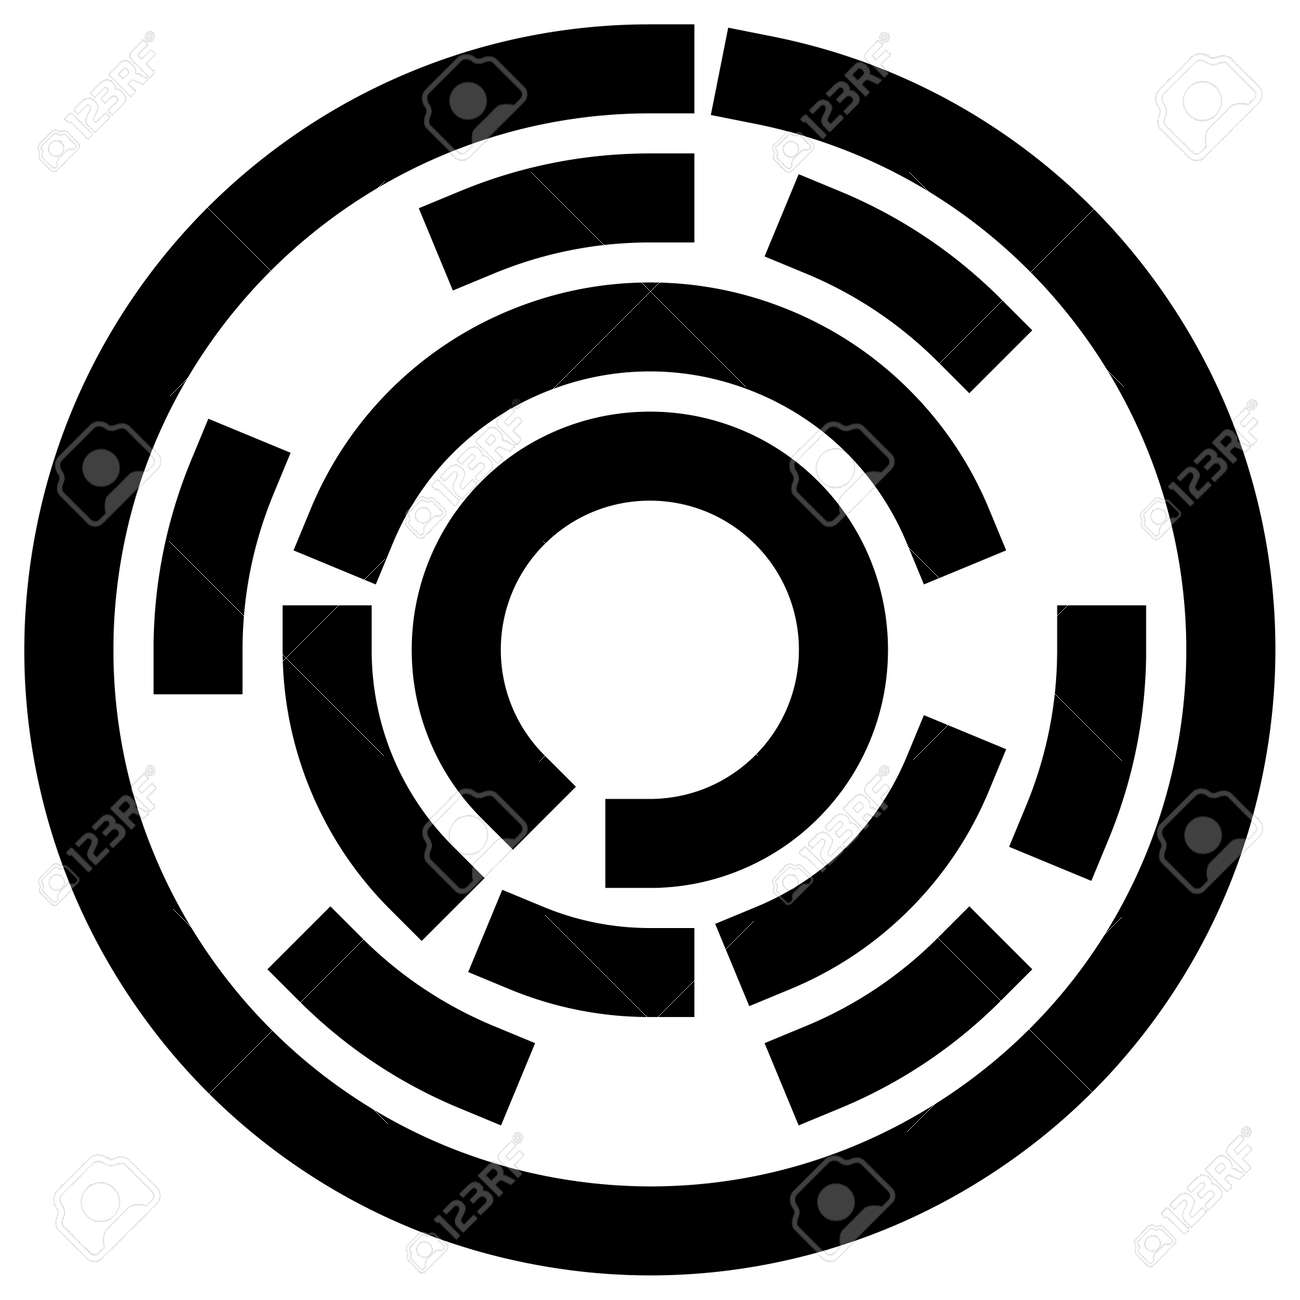 Radial, radiating lines abstract burst element. Concentric whirligig volute, helix spreading stripes. Circular, cyclic strips, streaks circle shape.Twist, spiral and rotation,loop concept illustration - 167452831